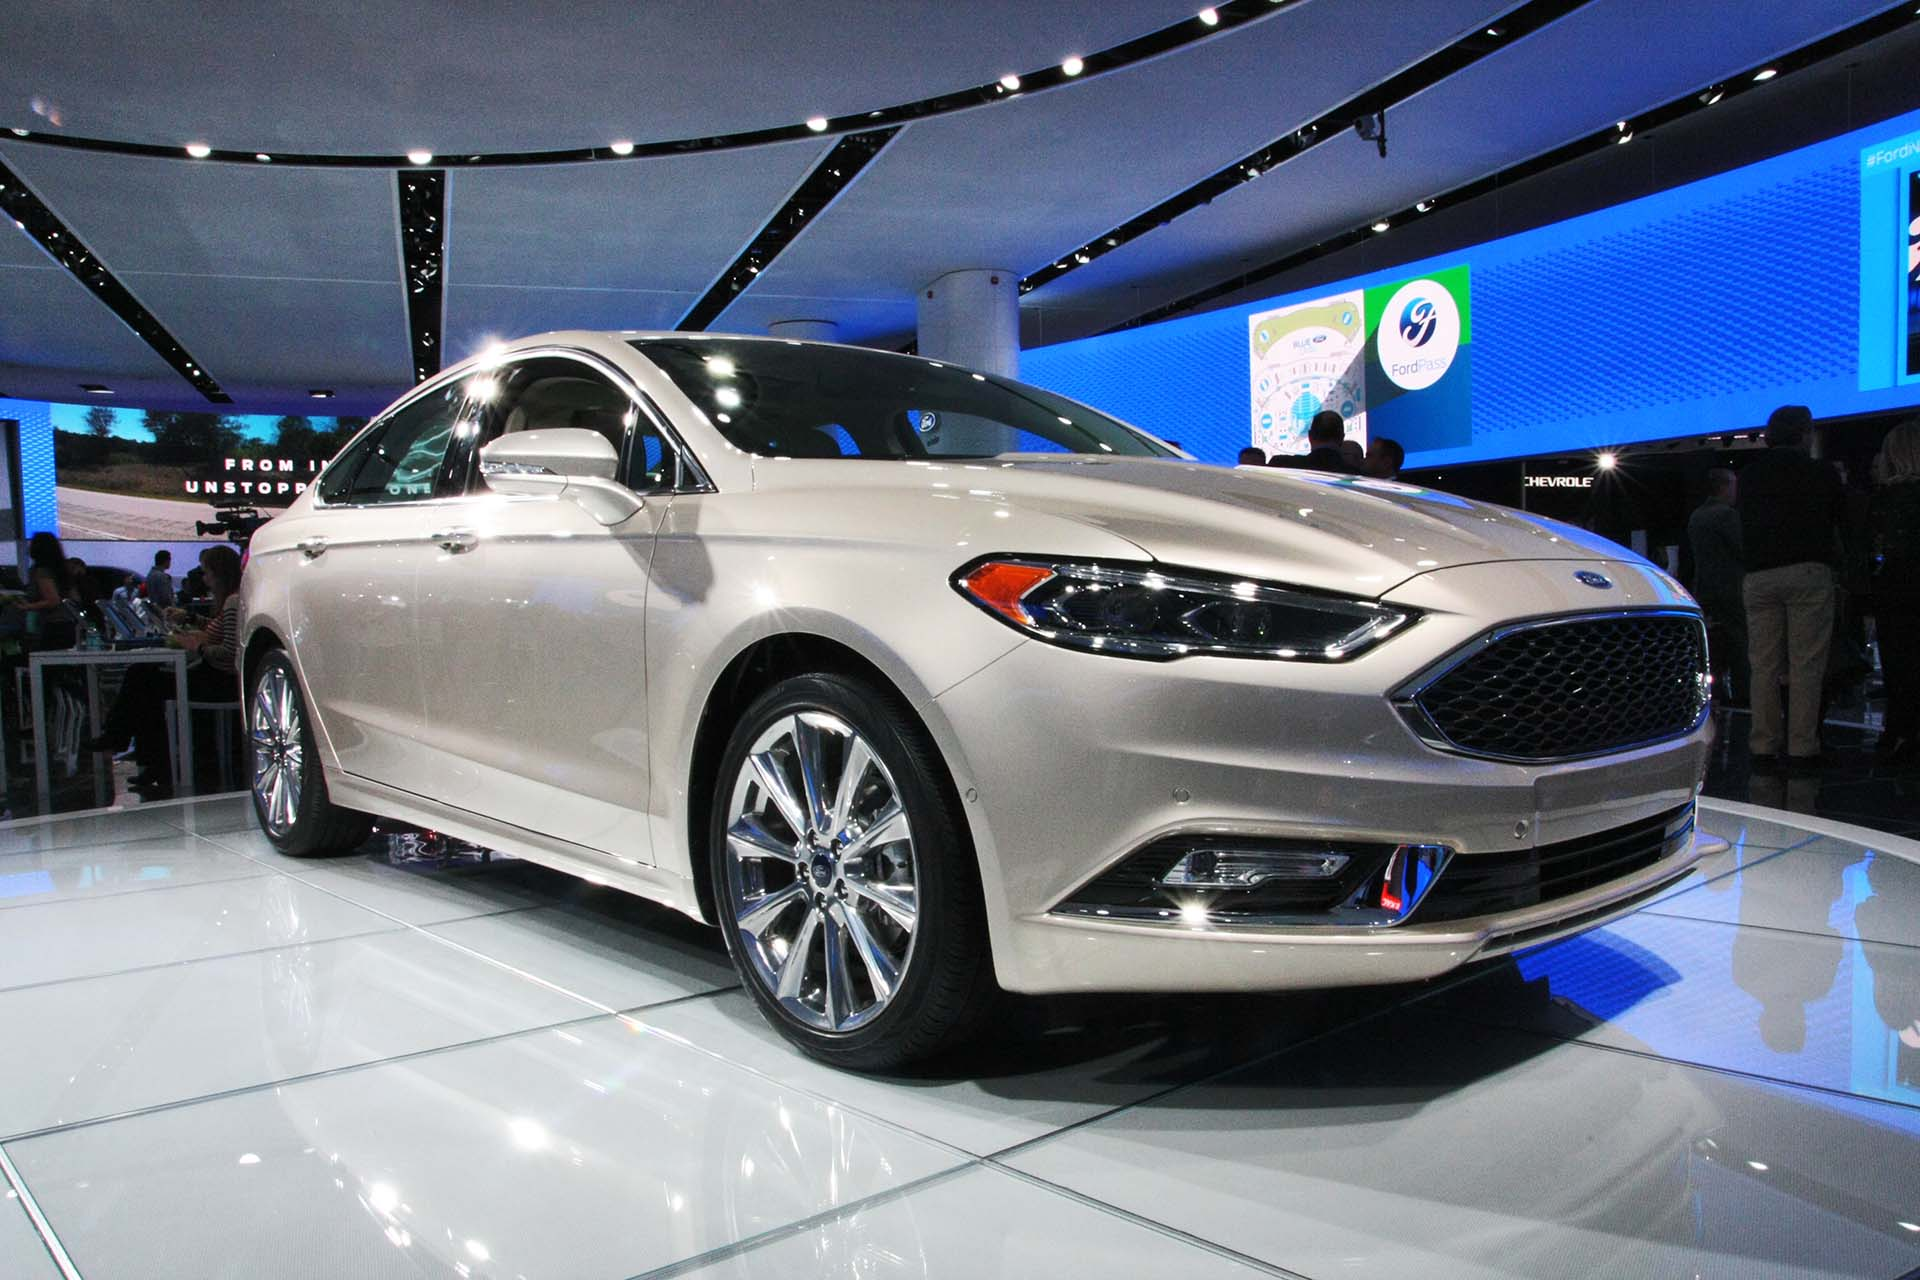 If you're looking for confidence and a hybrid powertrain, however, you'll find a worthy contender on our own shores with the 2017 Ford Fusion. Buyers will have their pick of four-cylinder and V6 EcoBoost engines, with Hybrid and Energi versions also available.